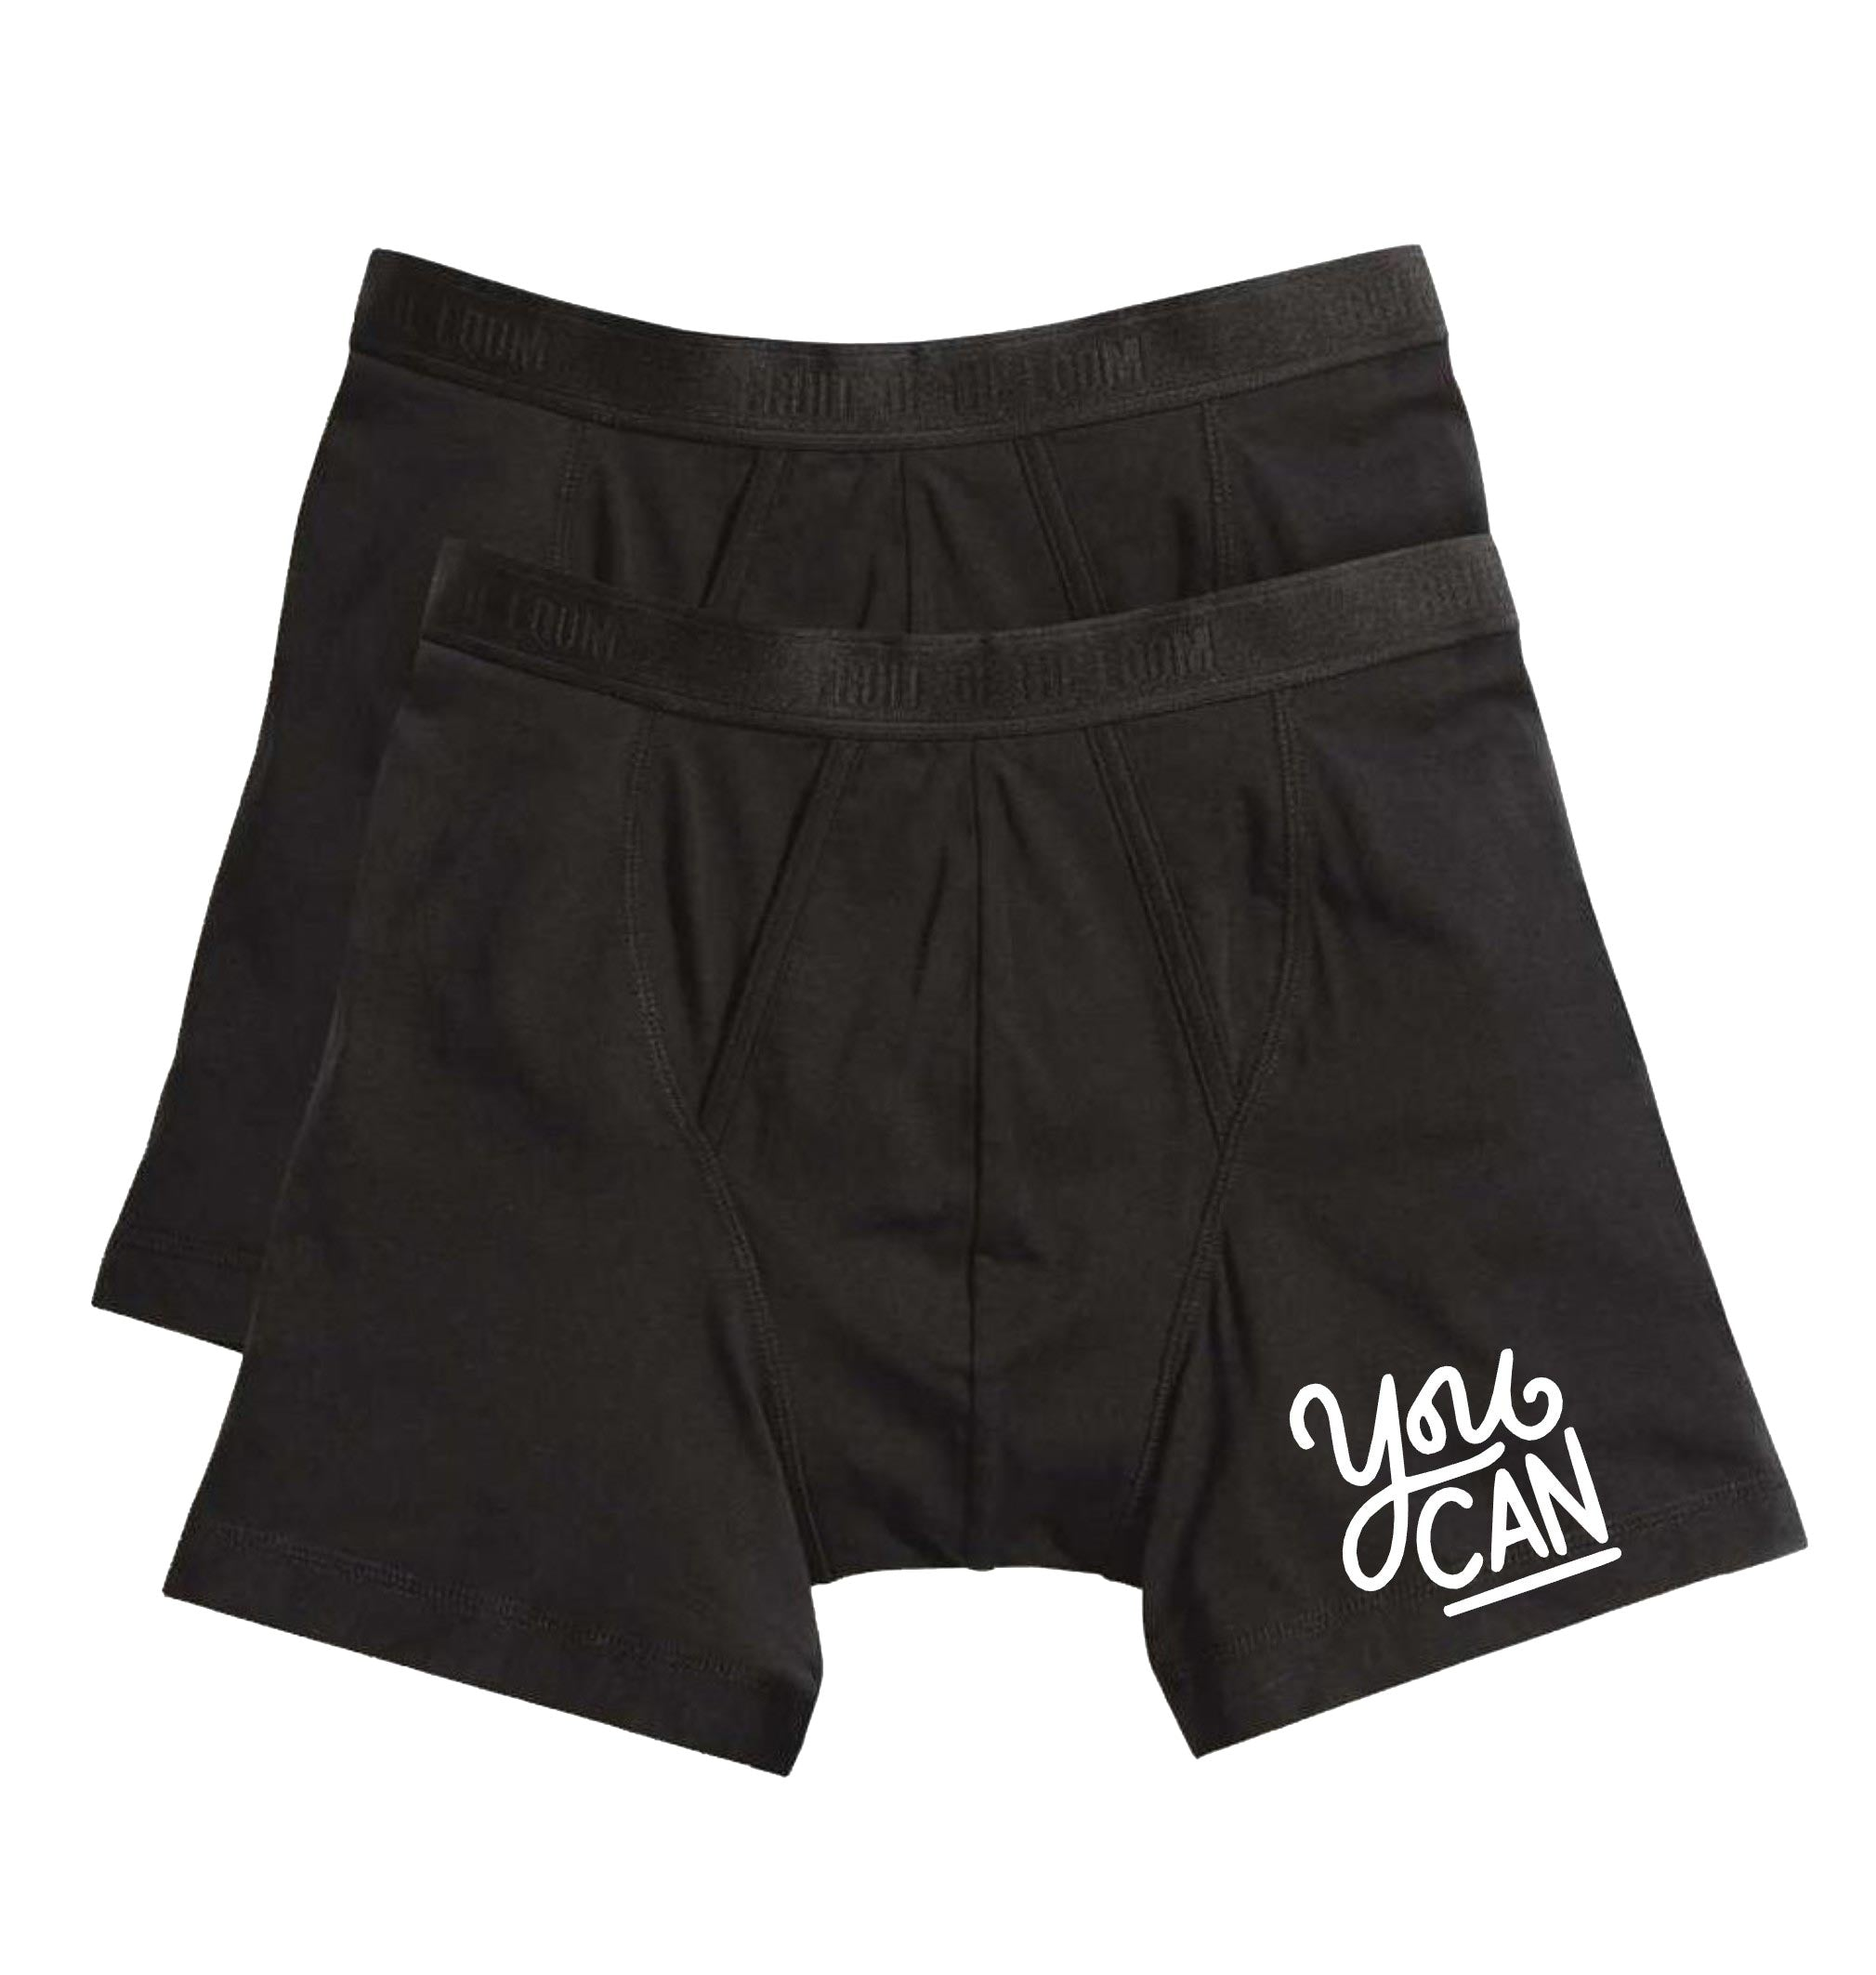 UNDERWEAR FOR MEN | BOXER BRIEFS - YOU CAN - Georgie & Moon